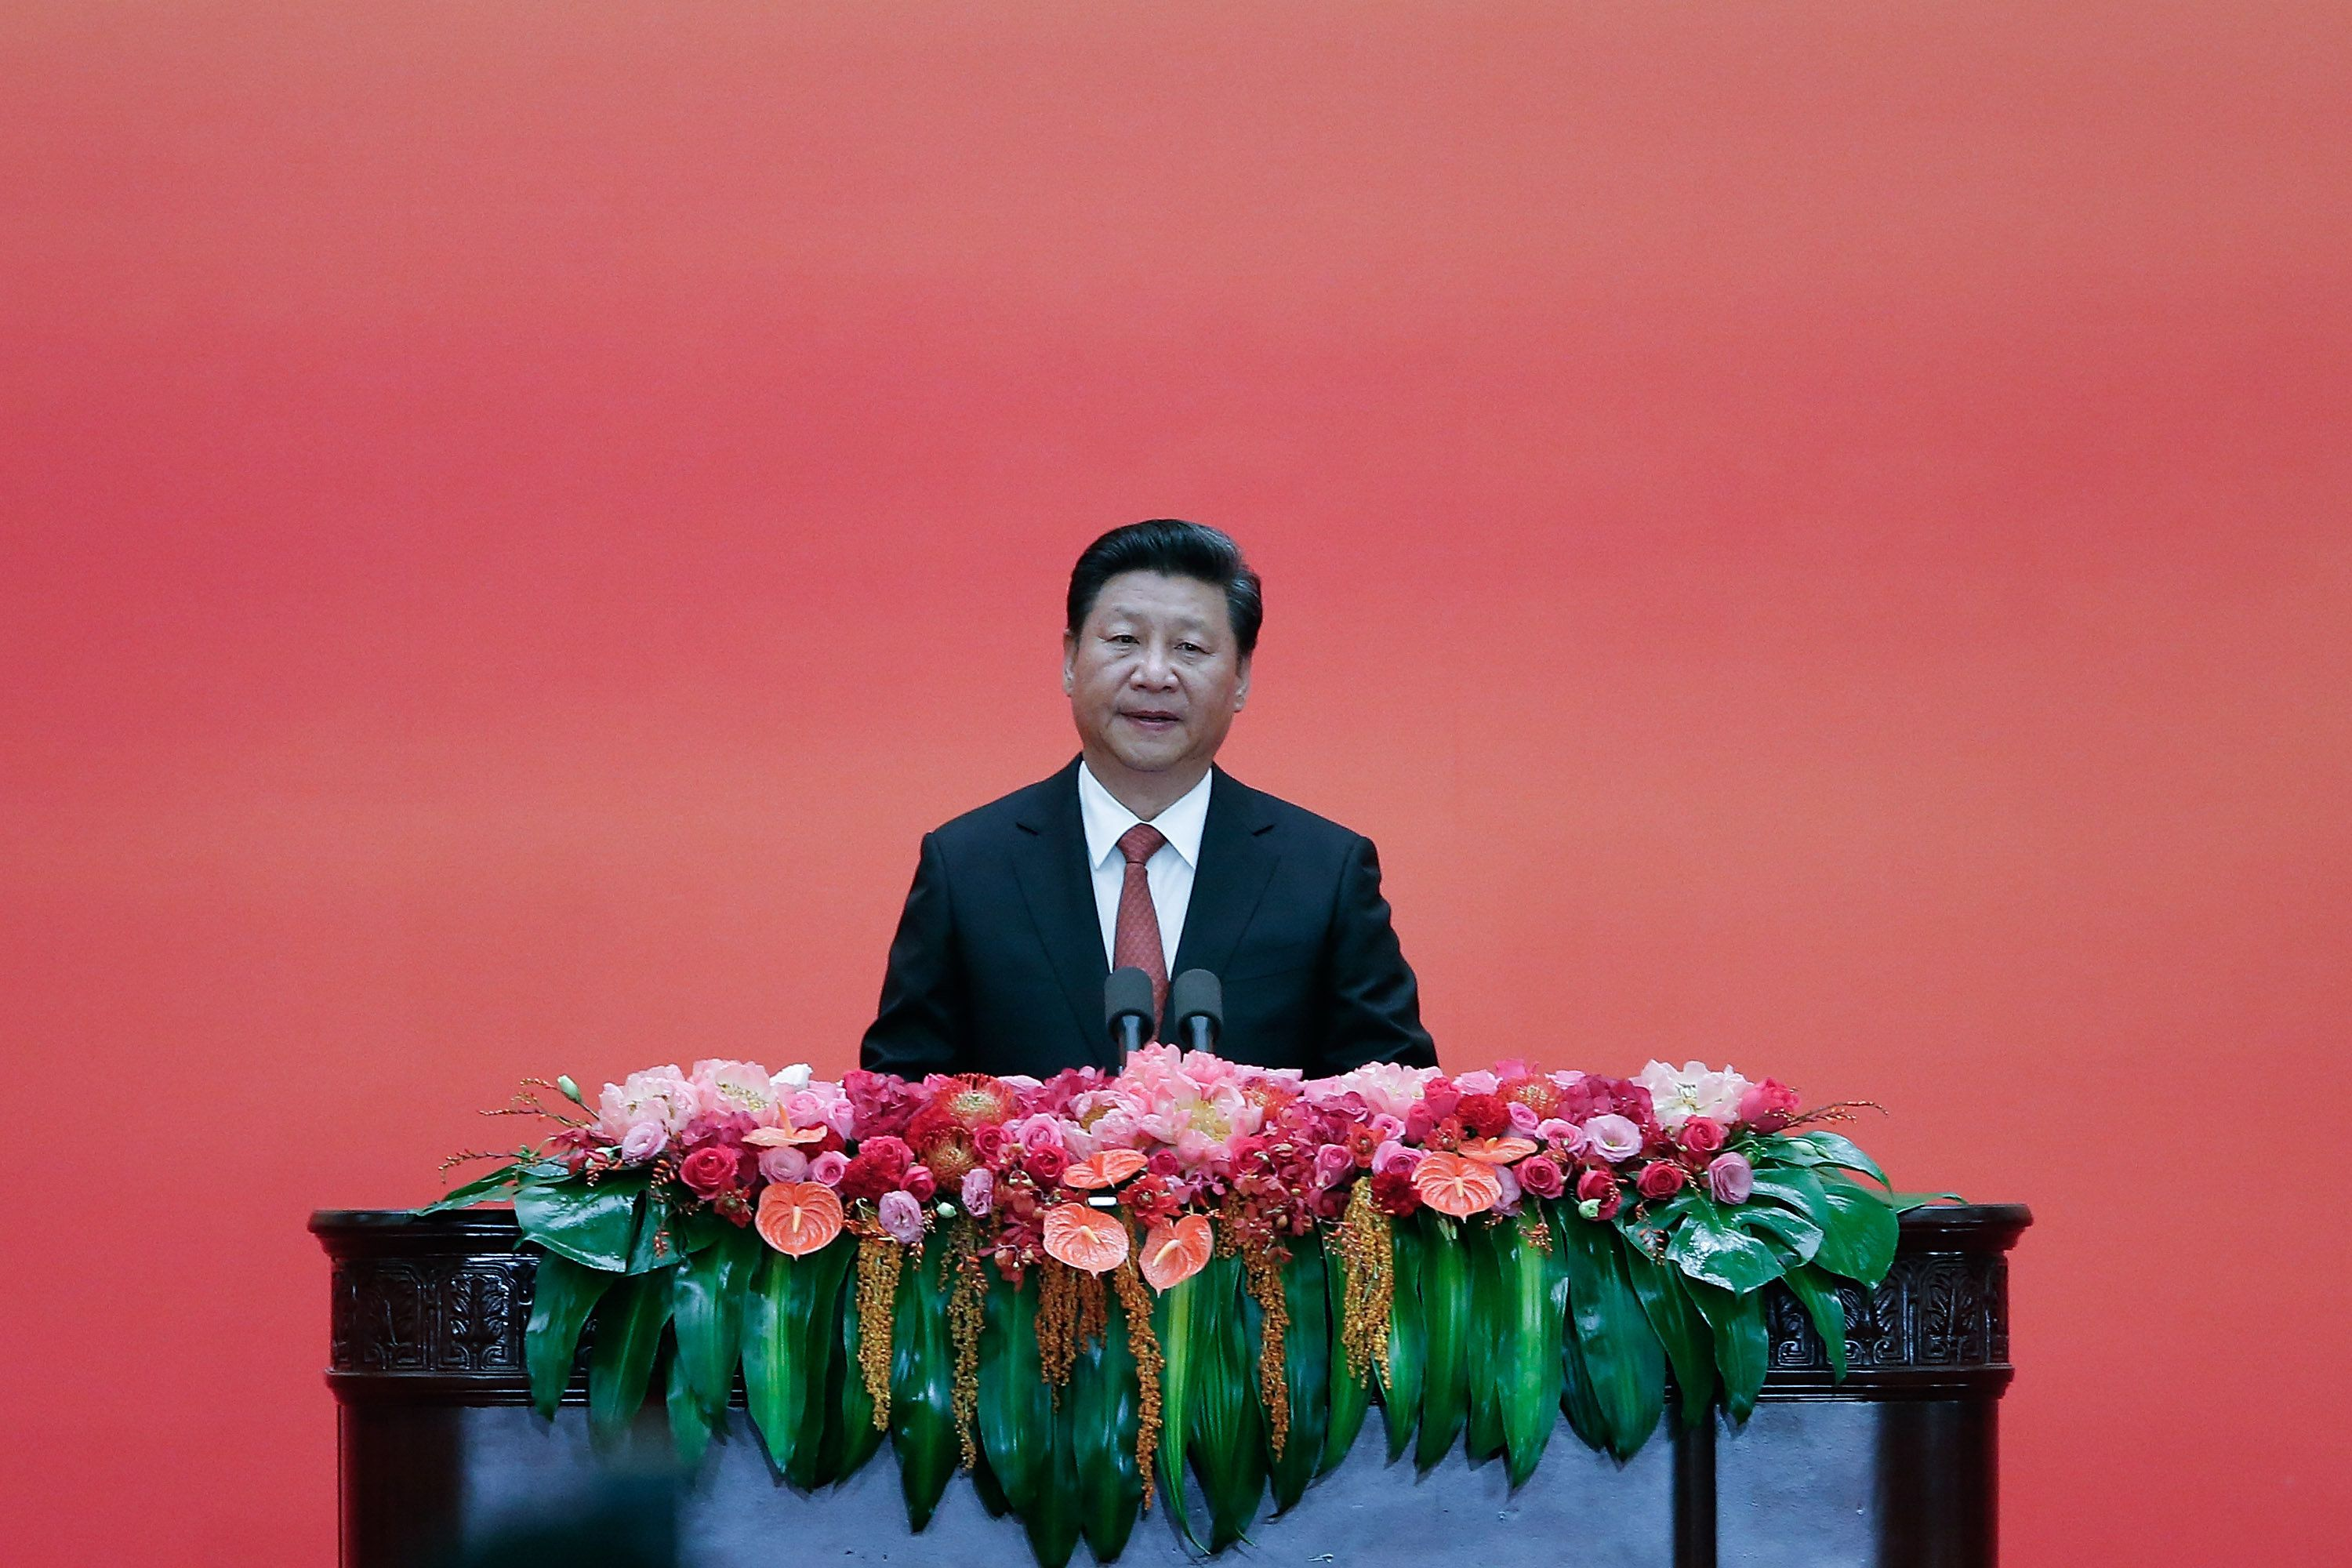 BEIJING, CHINA - SEPTEMBER 03:  Chinese President Xi Jinping speaks  during the Reception Commemorating the 70th Anniversary of the Victory of the Chinese People's War of Resistance Against Japanese Aggression and the World Anti-Fascist War at The Great Hall Of The People on September 3, 2015 in Beijing, China. China is marking the 70th anniversary of the end of World War II and its role in defeating Japan with a new national holiday and a military parade in Beijing.  (Photo by Lintao Zhang/Getty Images)